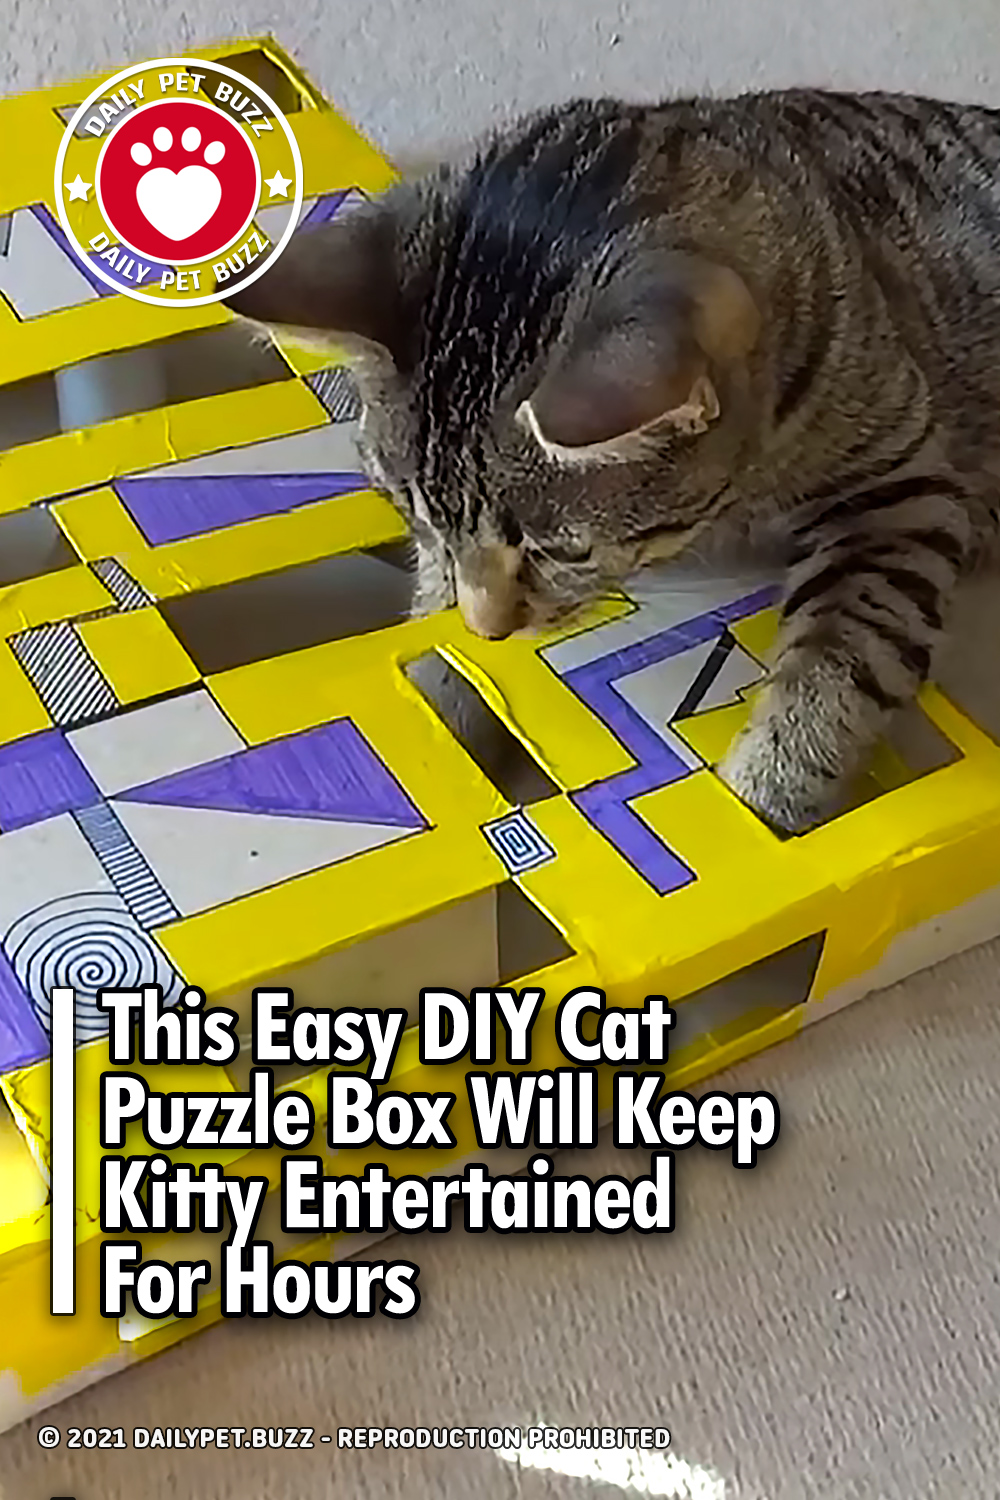 This Easy DIY Cat Puzzle Box Will Keep Kitty Entertained For Hours